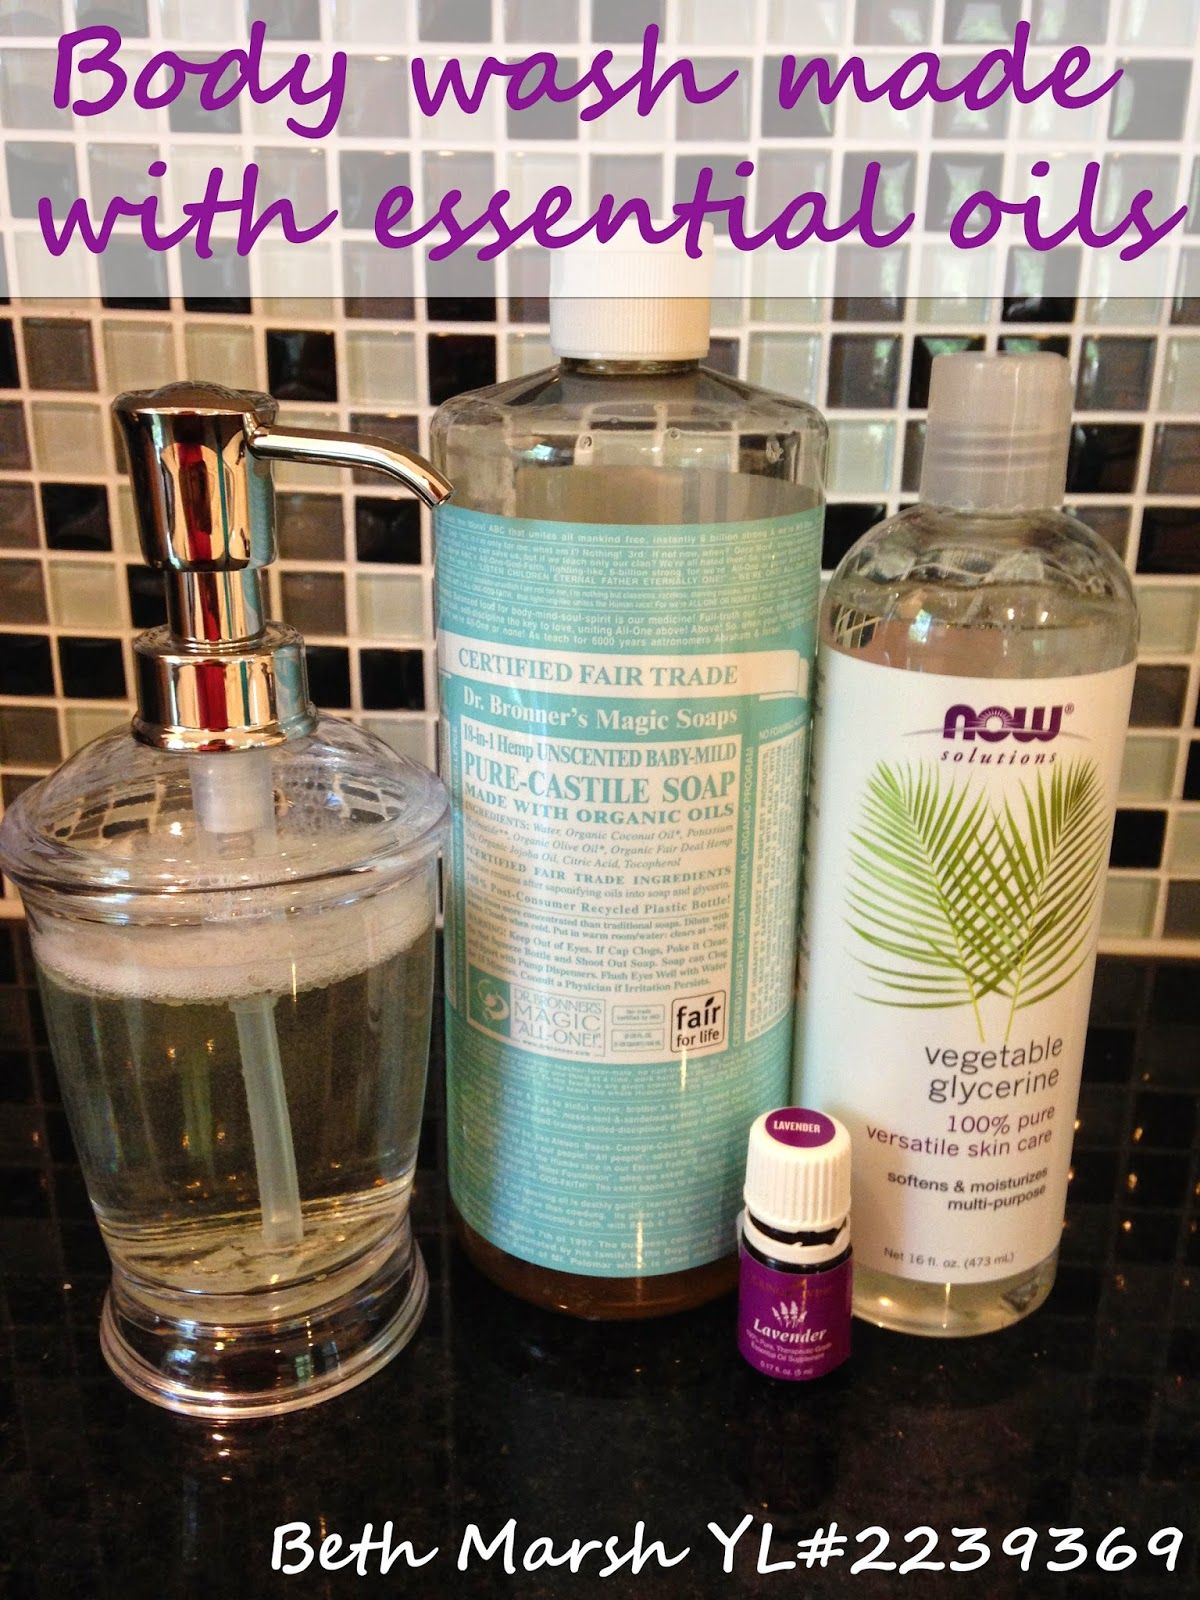 All natural body wash made with essential oils great for